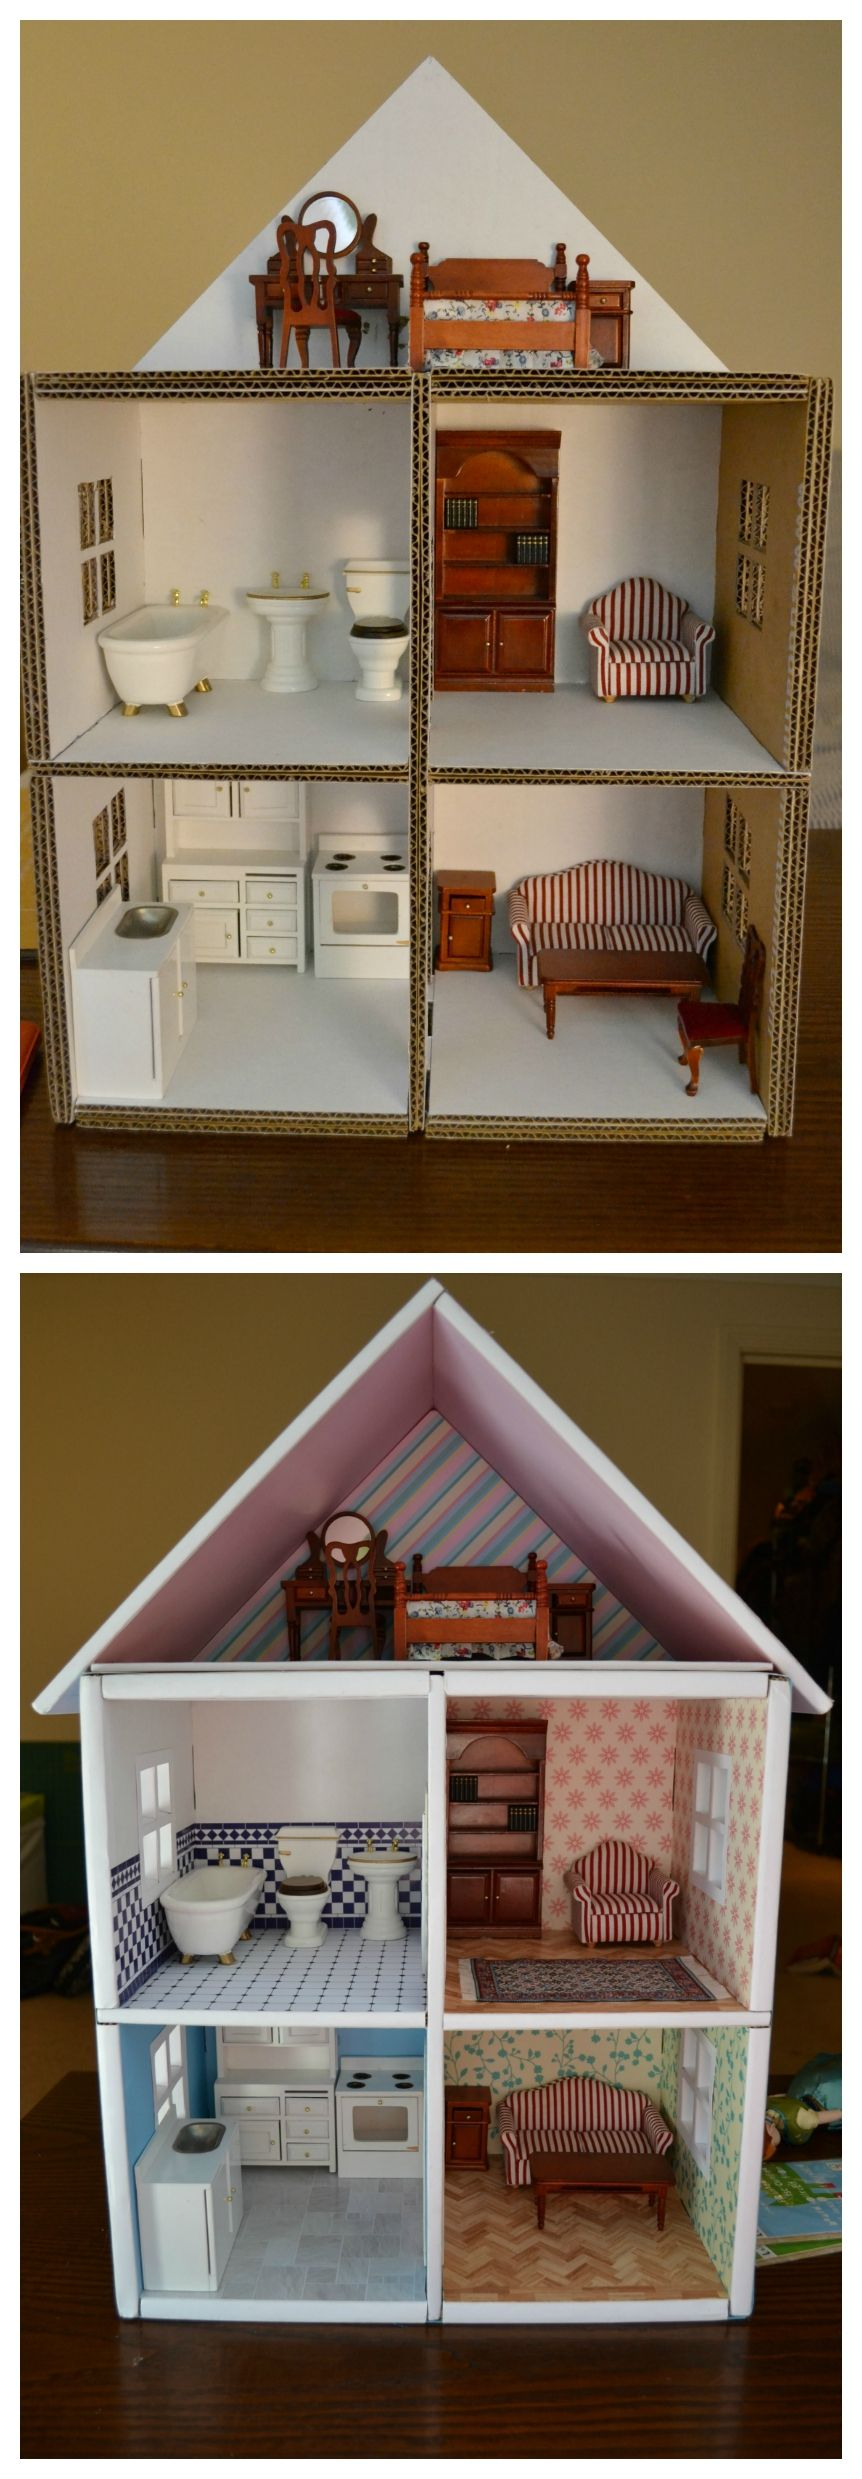 diy dollhouse made from cardboard boxes baby pinterest puppen diy puppenhaus und barbie haus. Black Bedroom Furniture Sets. Home Design Ideas